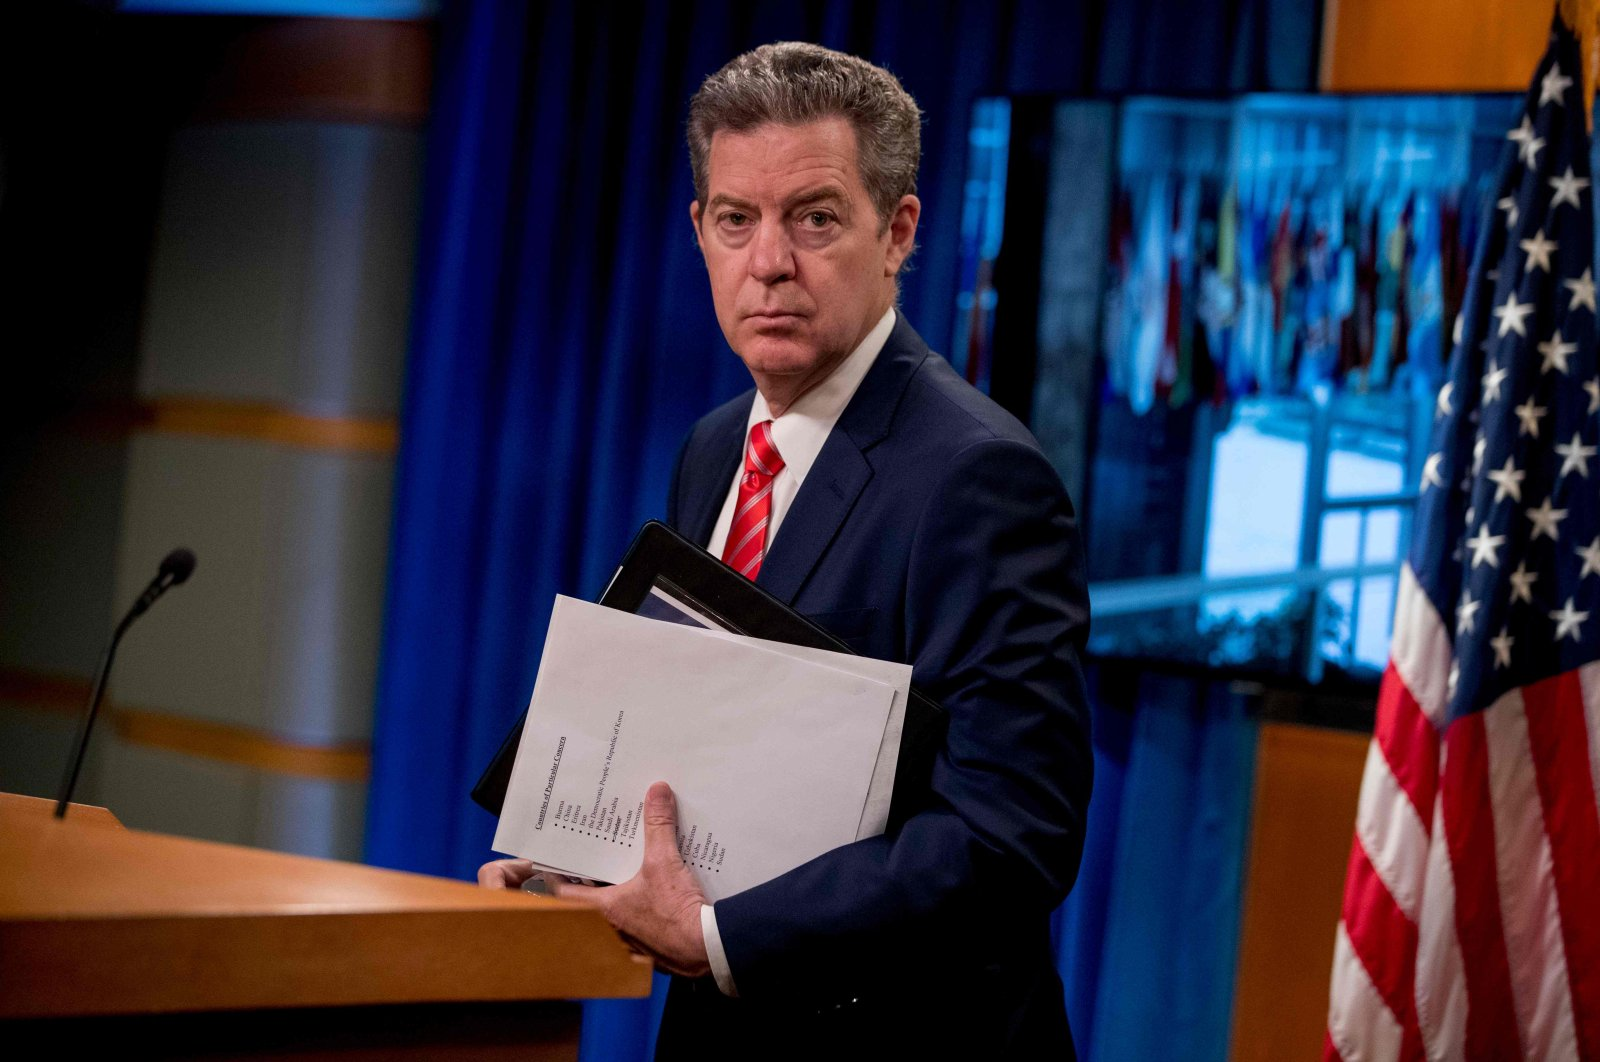 Ambassador at Large for International Religious Freedom, Sam Brownback, departs after speaking during a news conference at the State Department in Washington, D.C., June 10, 2020. (AFP Photo)